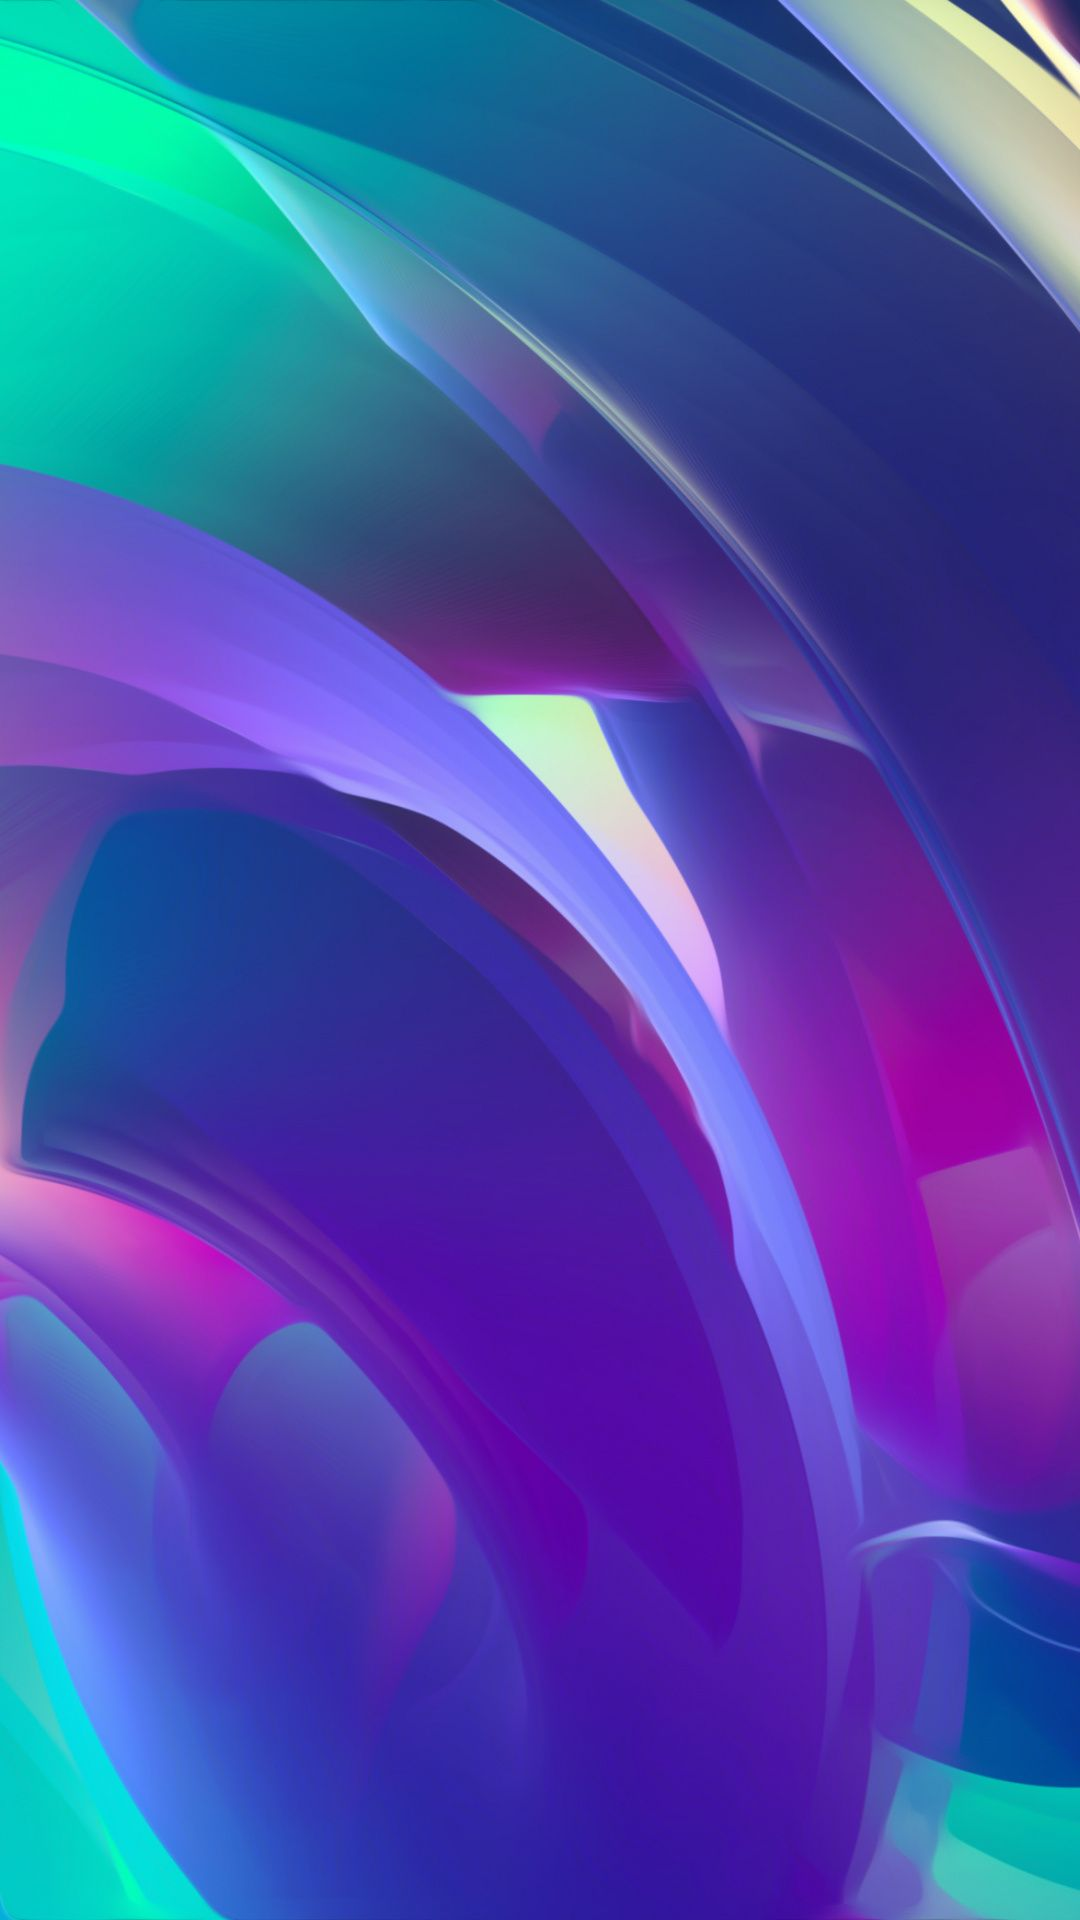 Curves Colorful And Vivid Abstract 1080x1920 Wallpaper Mkbhd Wallpapers Xiaomi Wallpapers Colorful Wallpaper